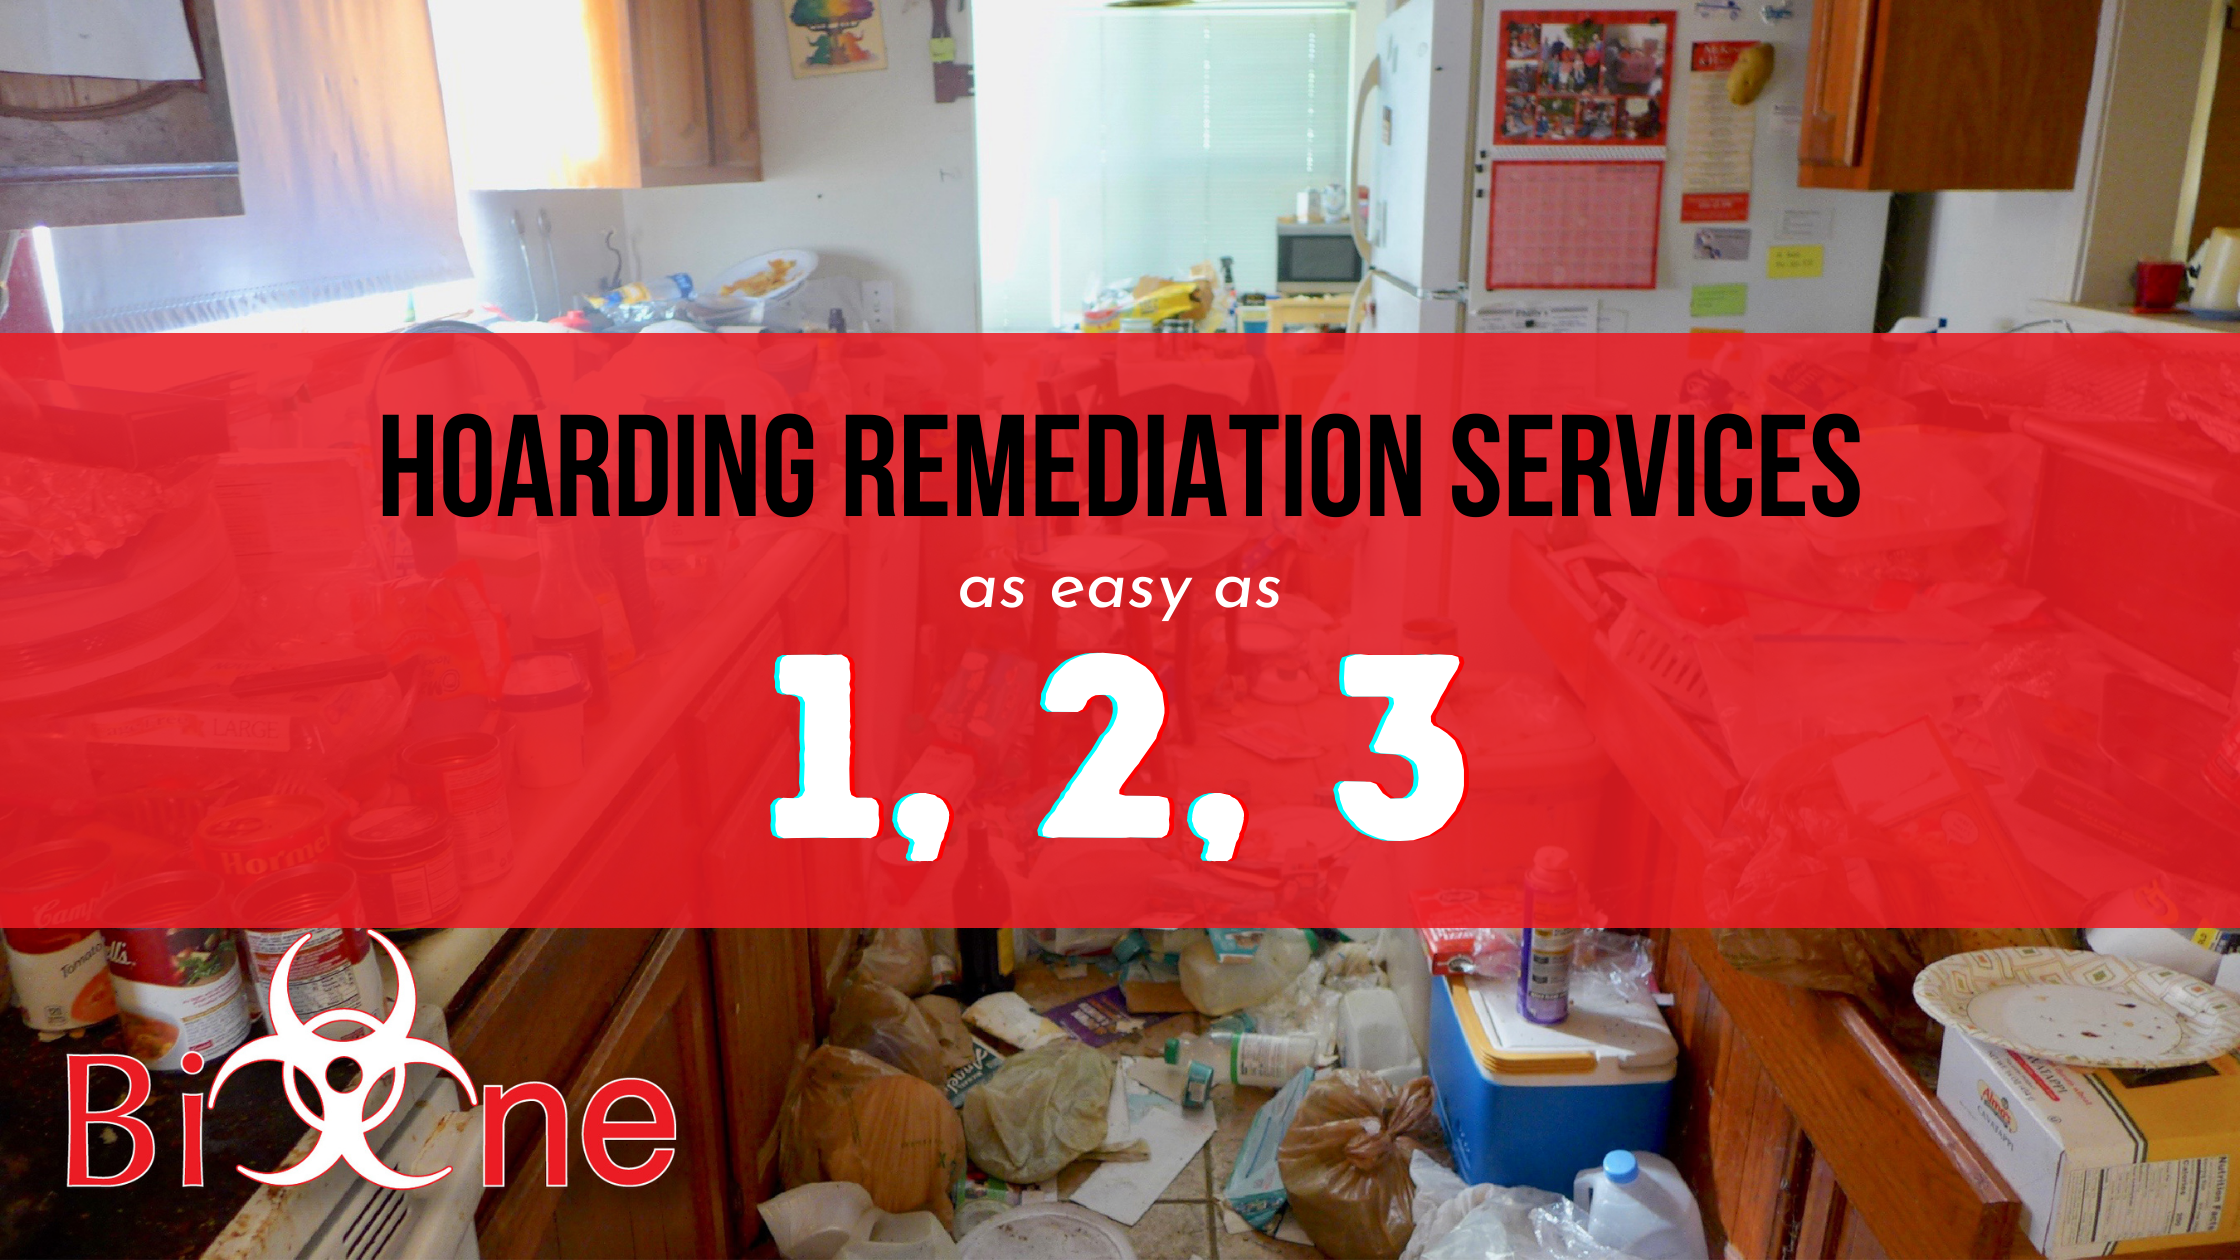 BIO-ONE HOARDING REMEDIATION SERVICES – EASY AS 1, 2, 3